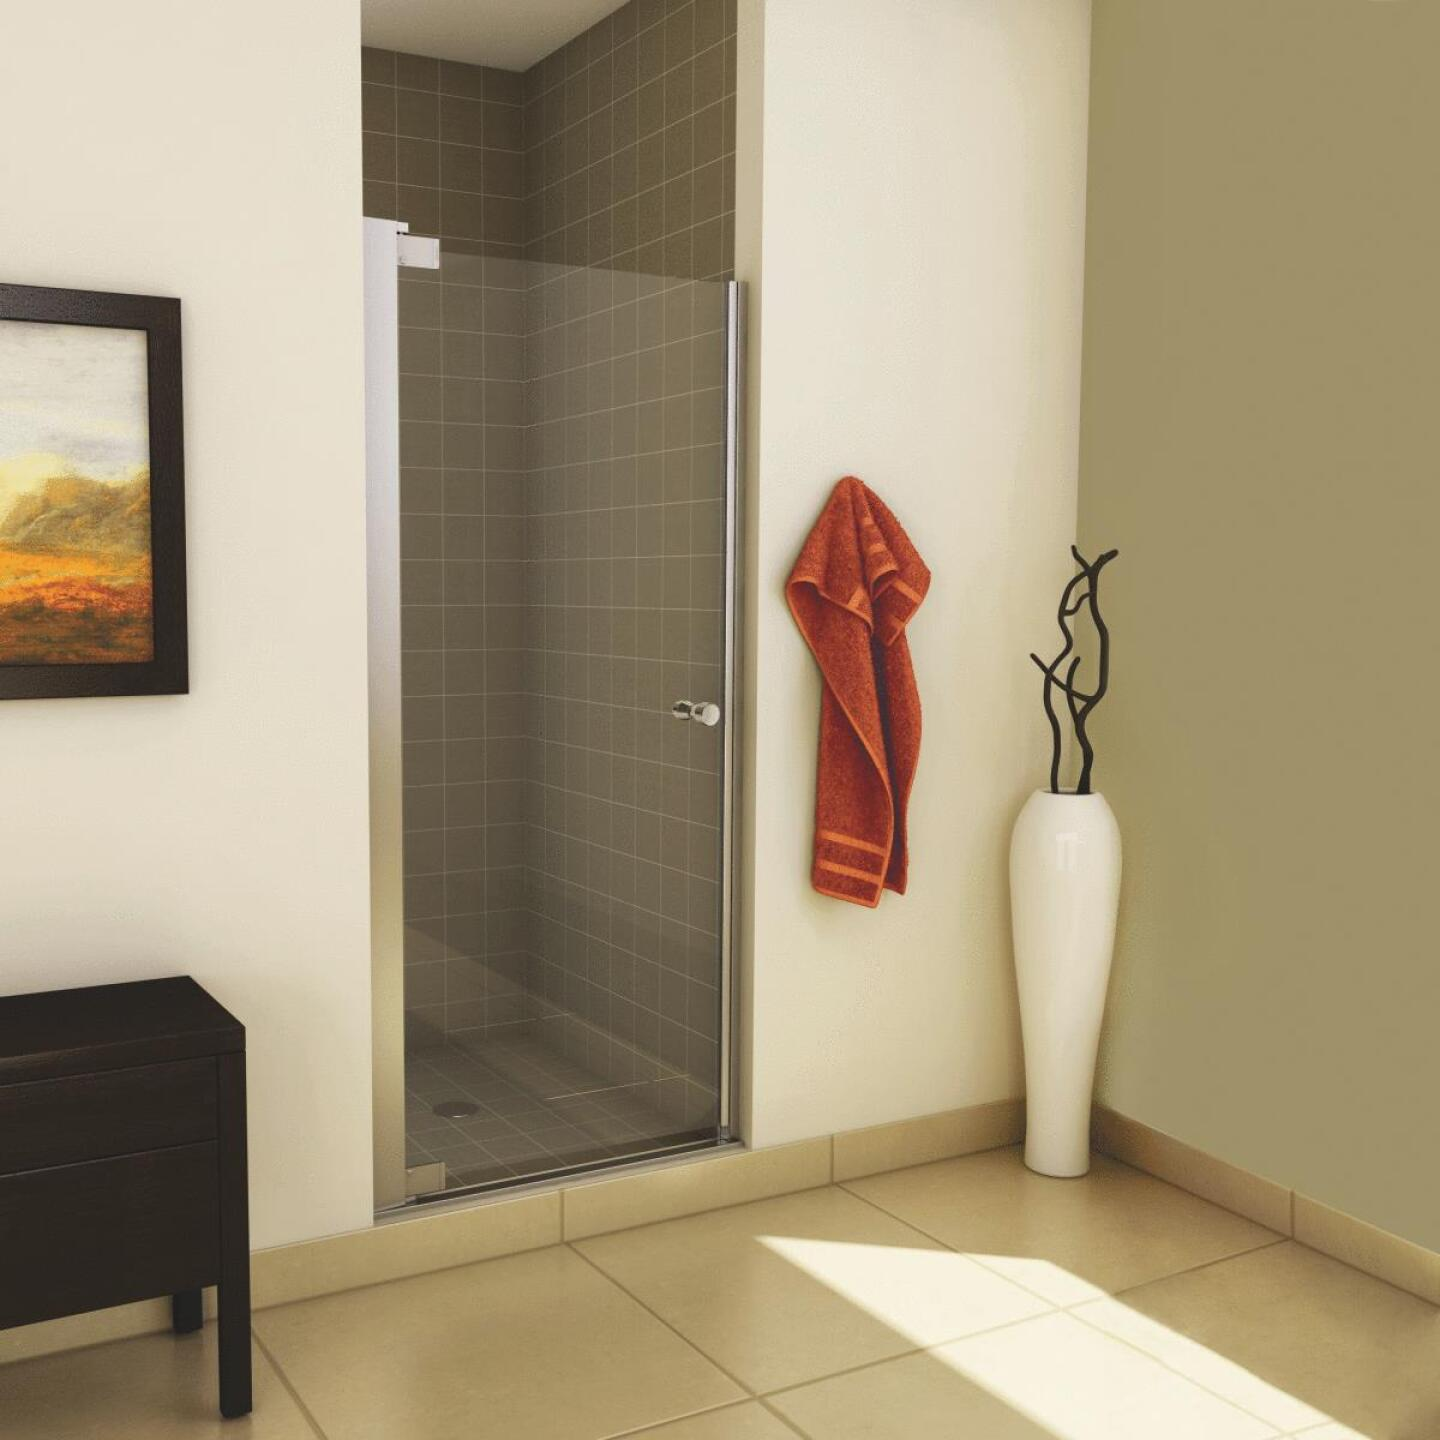 Maax Madono 36.5 In. W. X 67 In. H. Chrome Clear Glass Pivot Shower Door Image 2